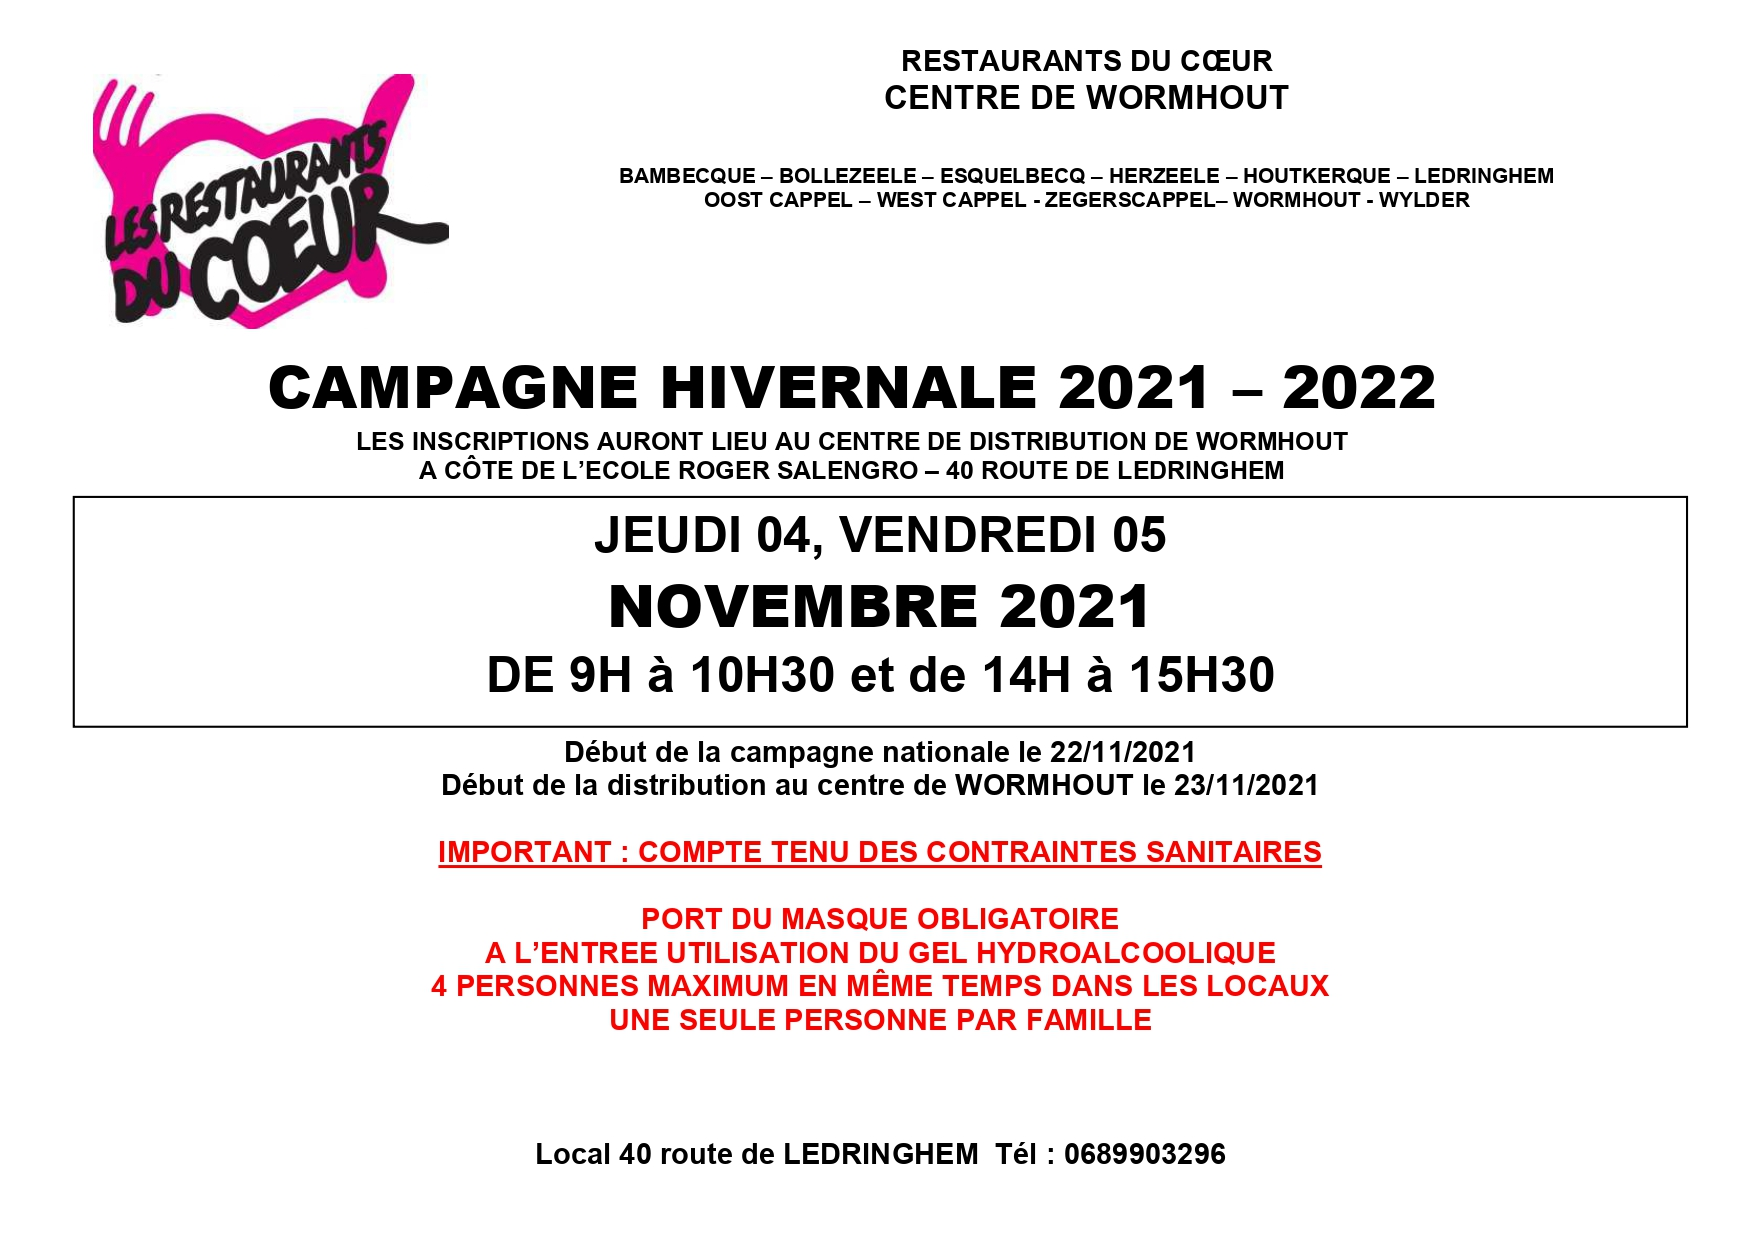 affiche inscriptions campagne 2021 2022_page-0001.jpg